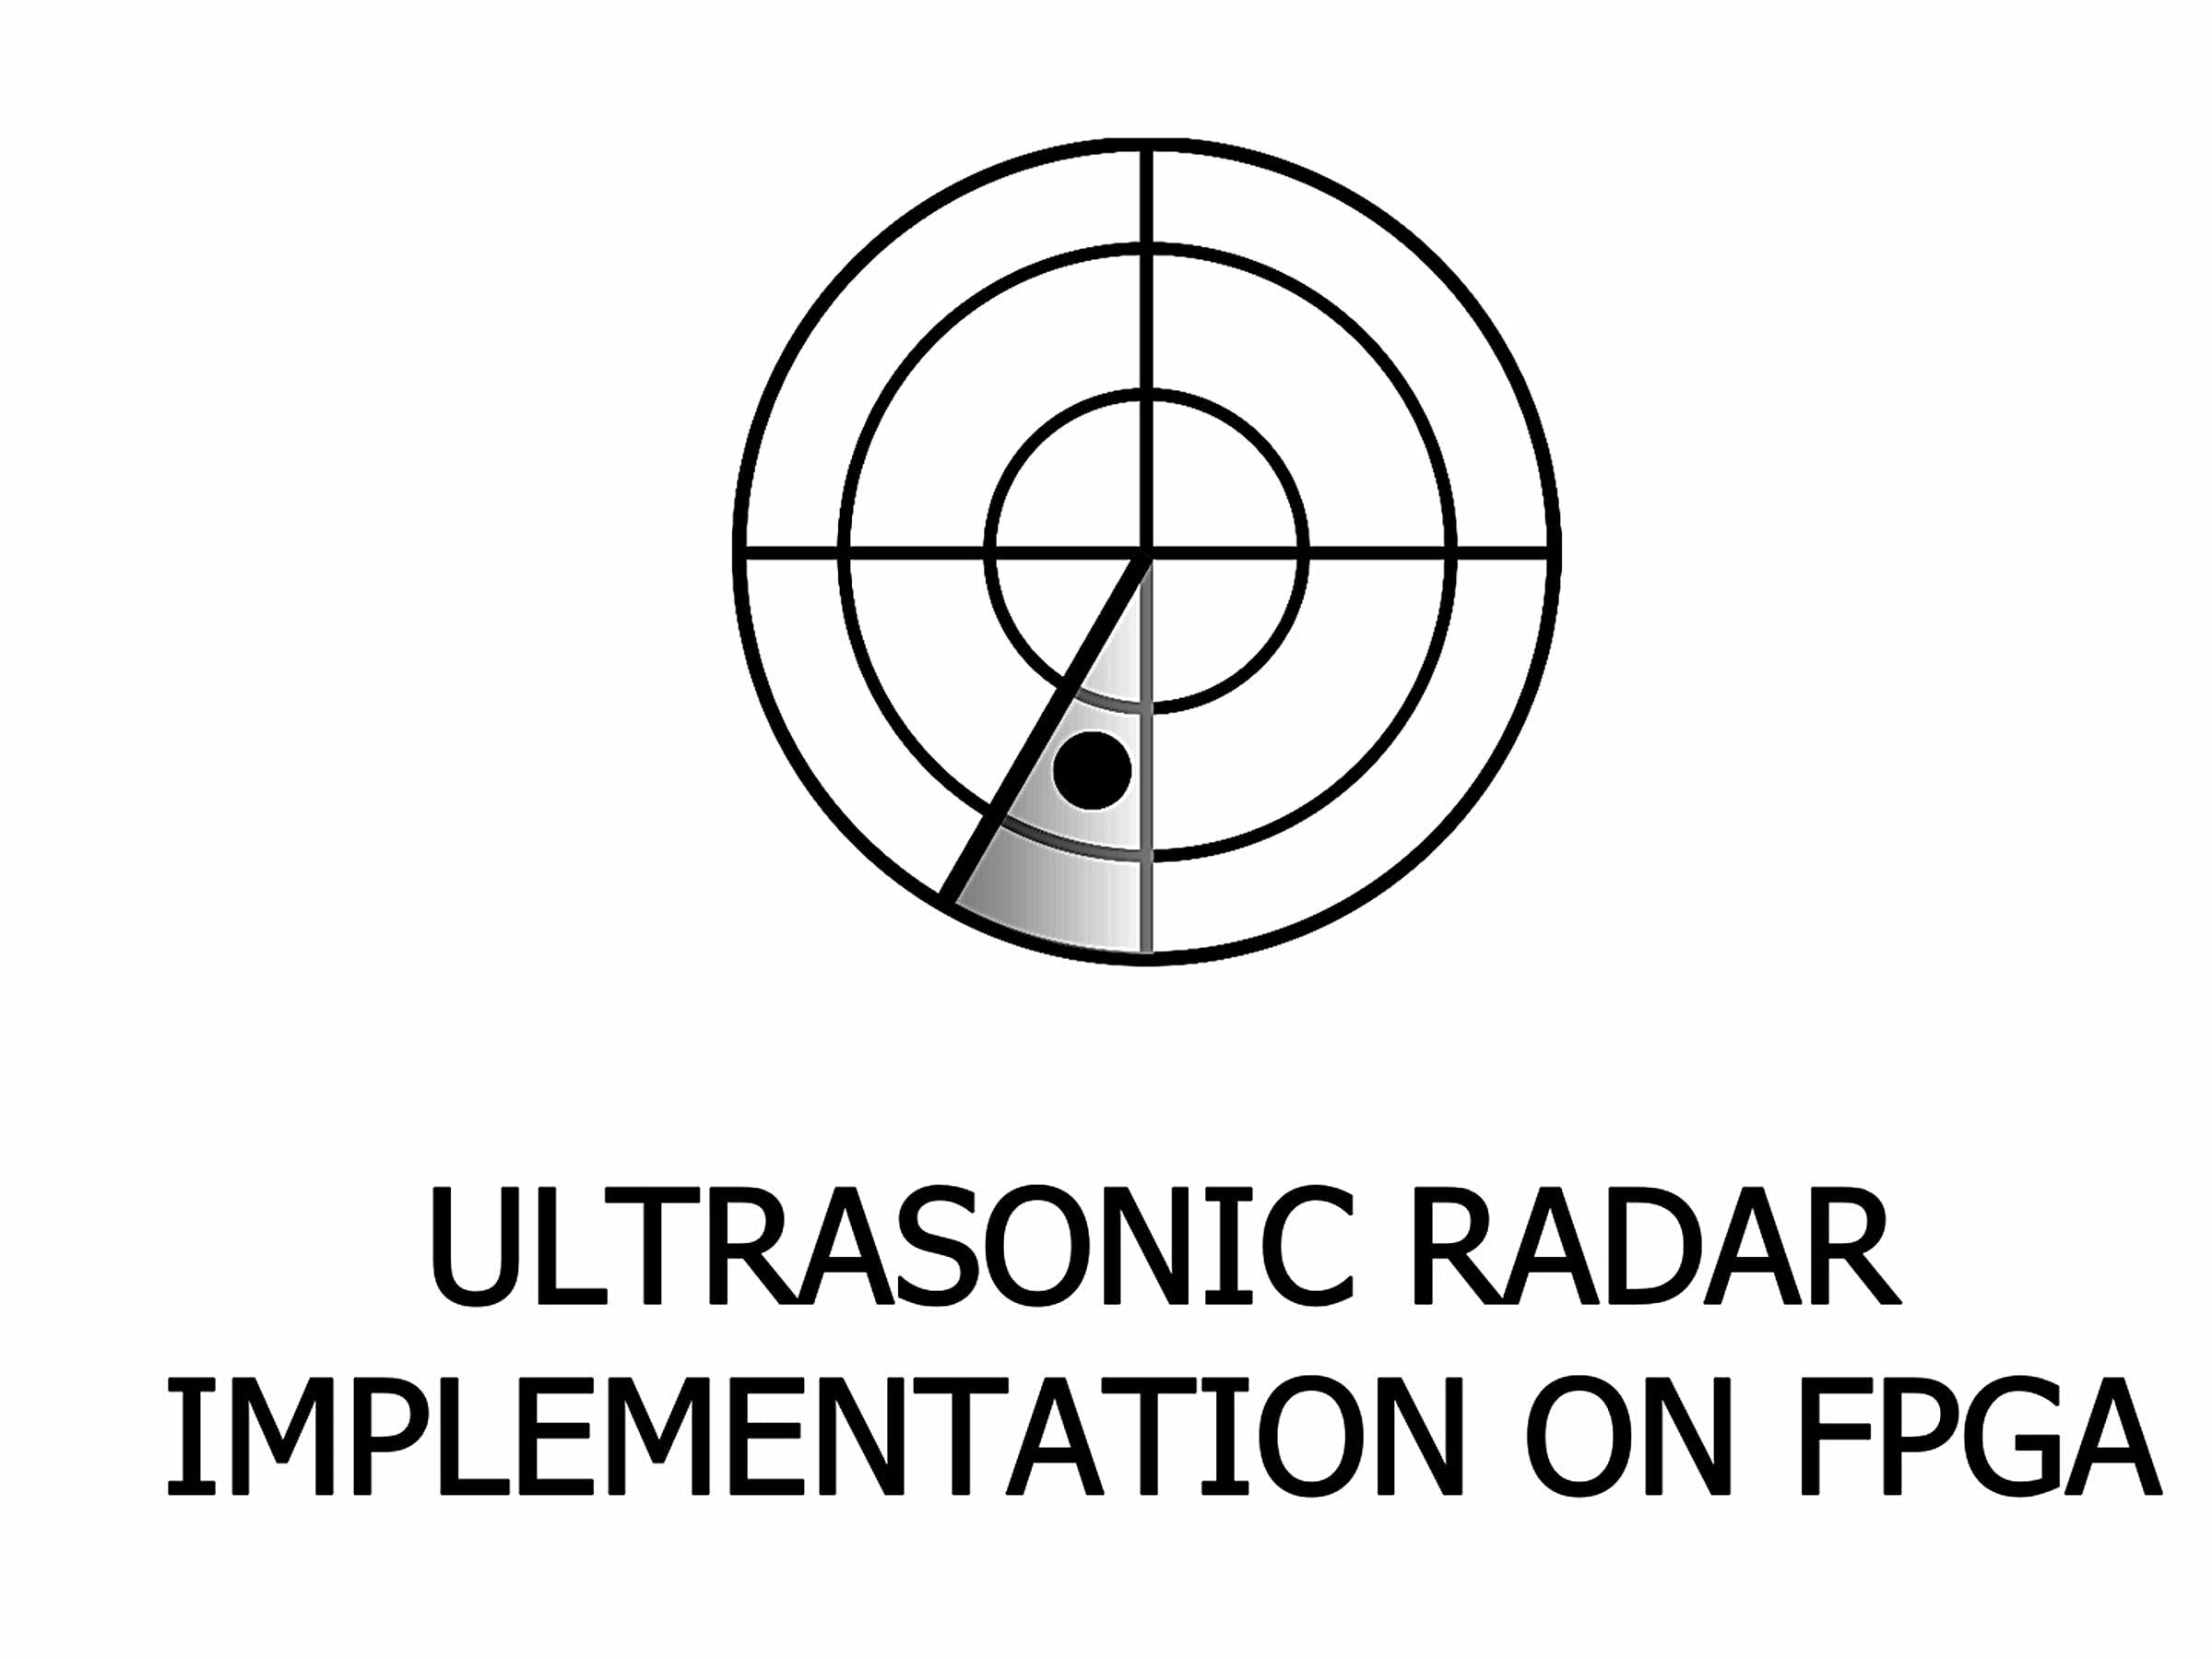 Ultrasonic Radar Implementation on FPGA